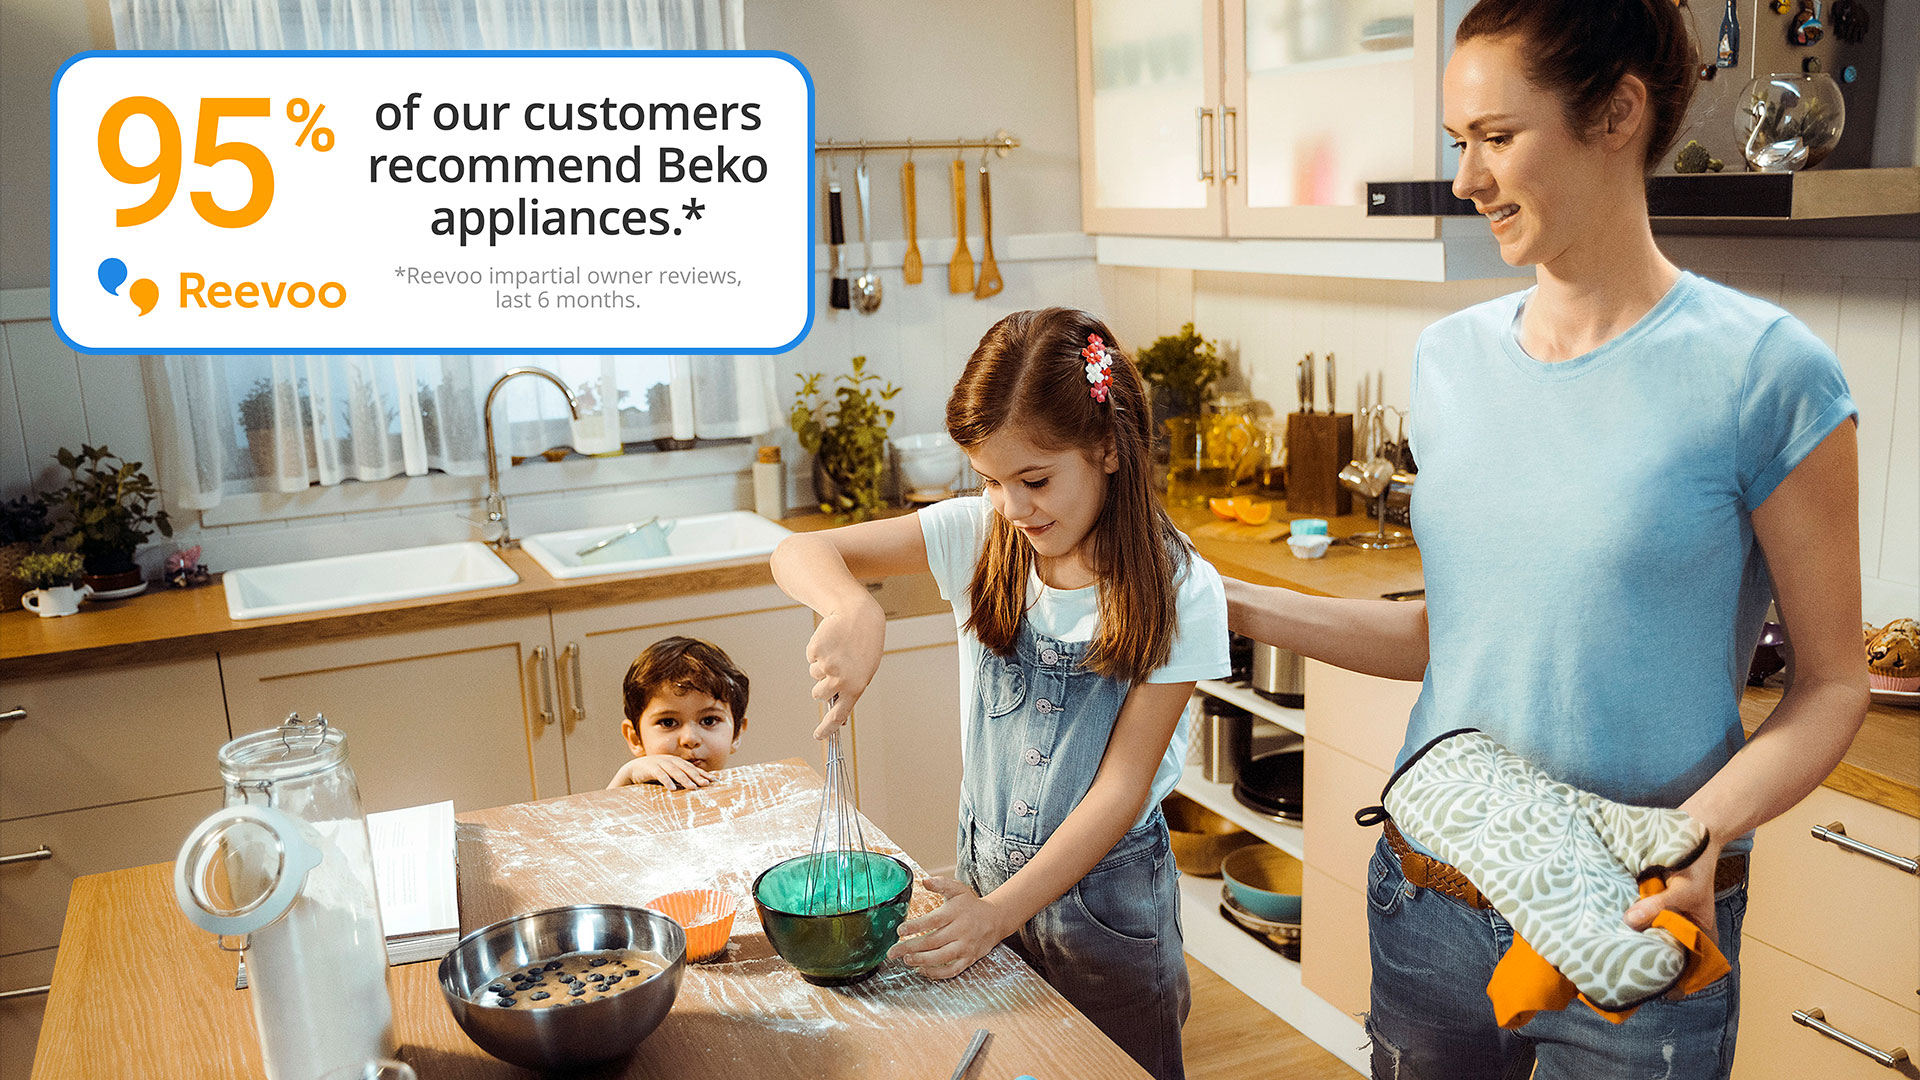 Beko Product Reviews | Kitchen Appliance Reviews | Beko UK